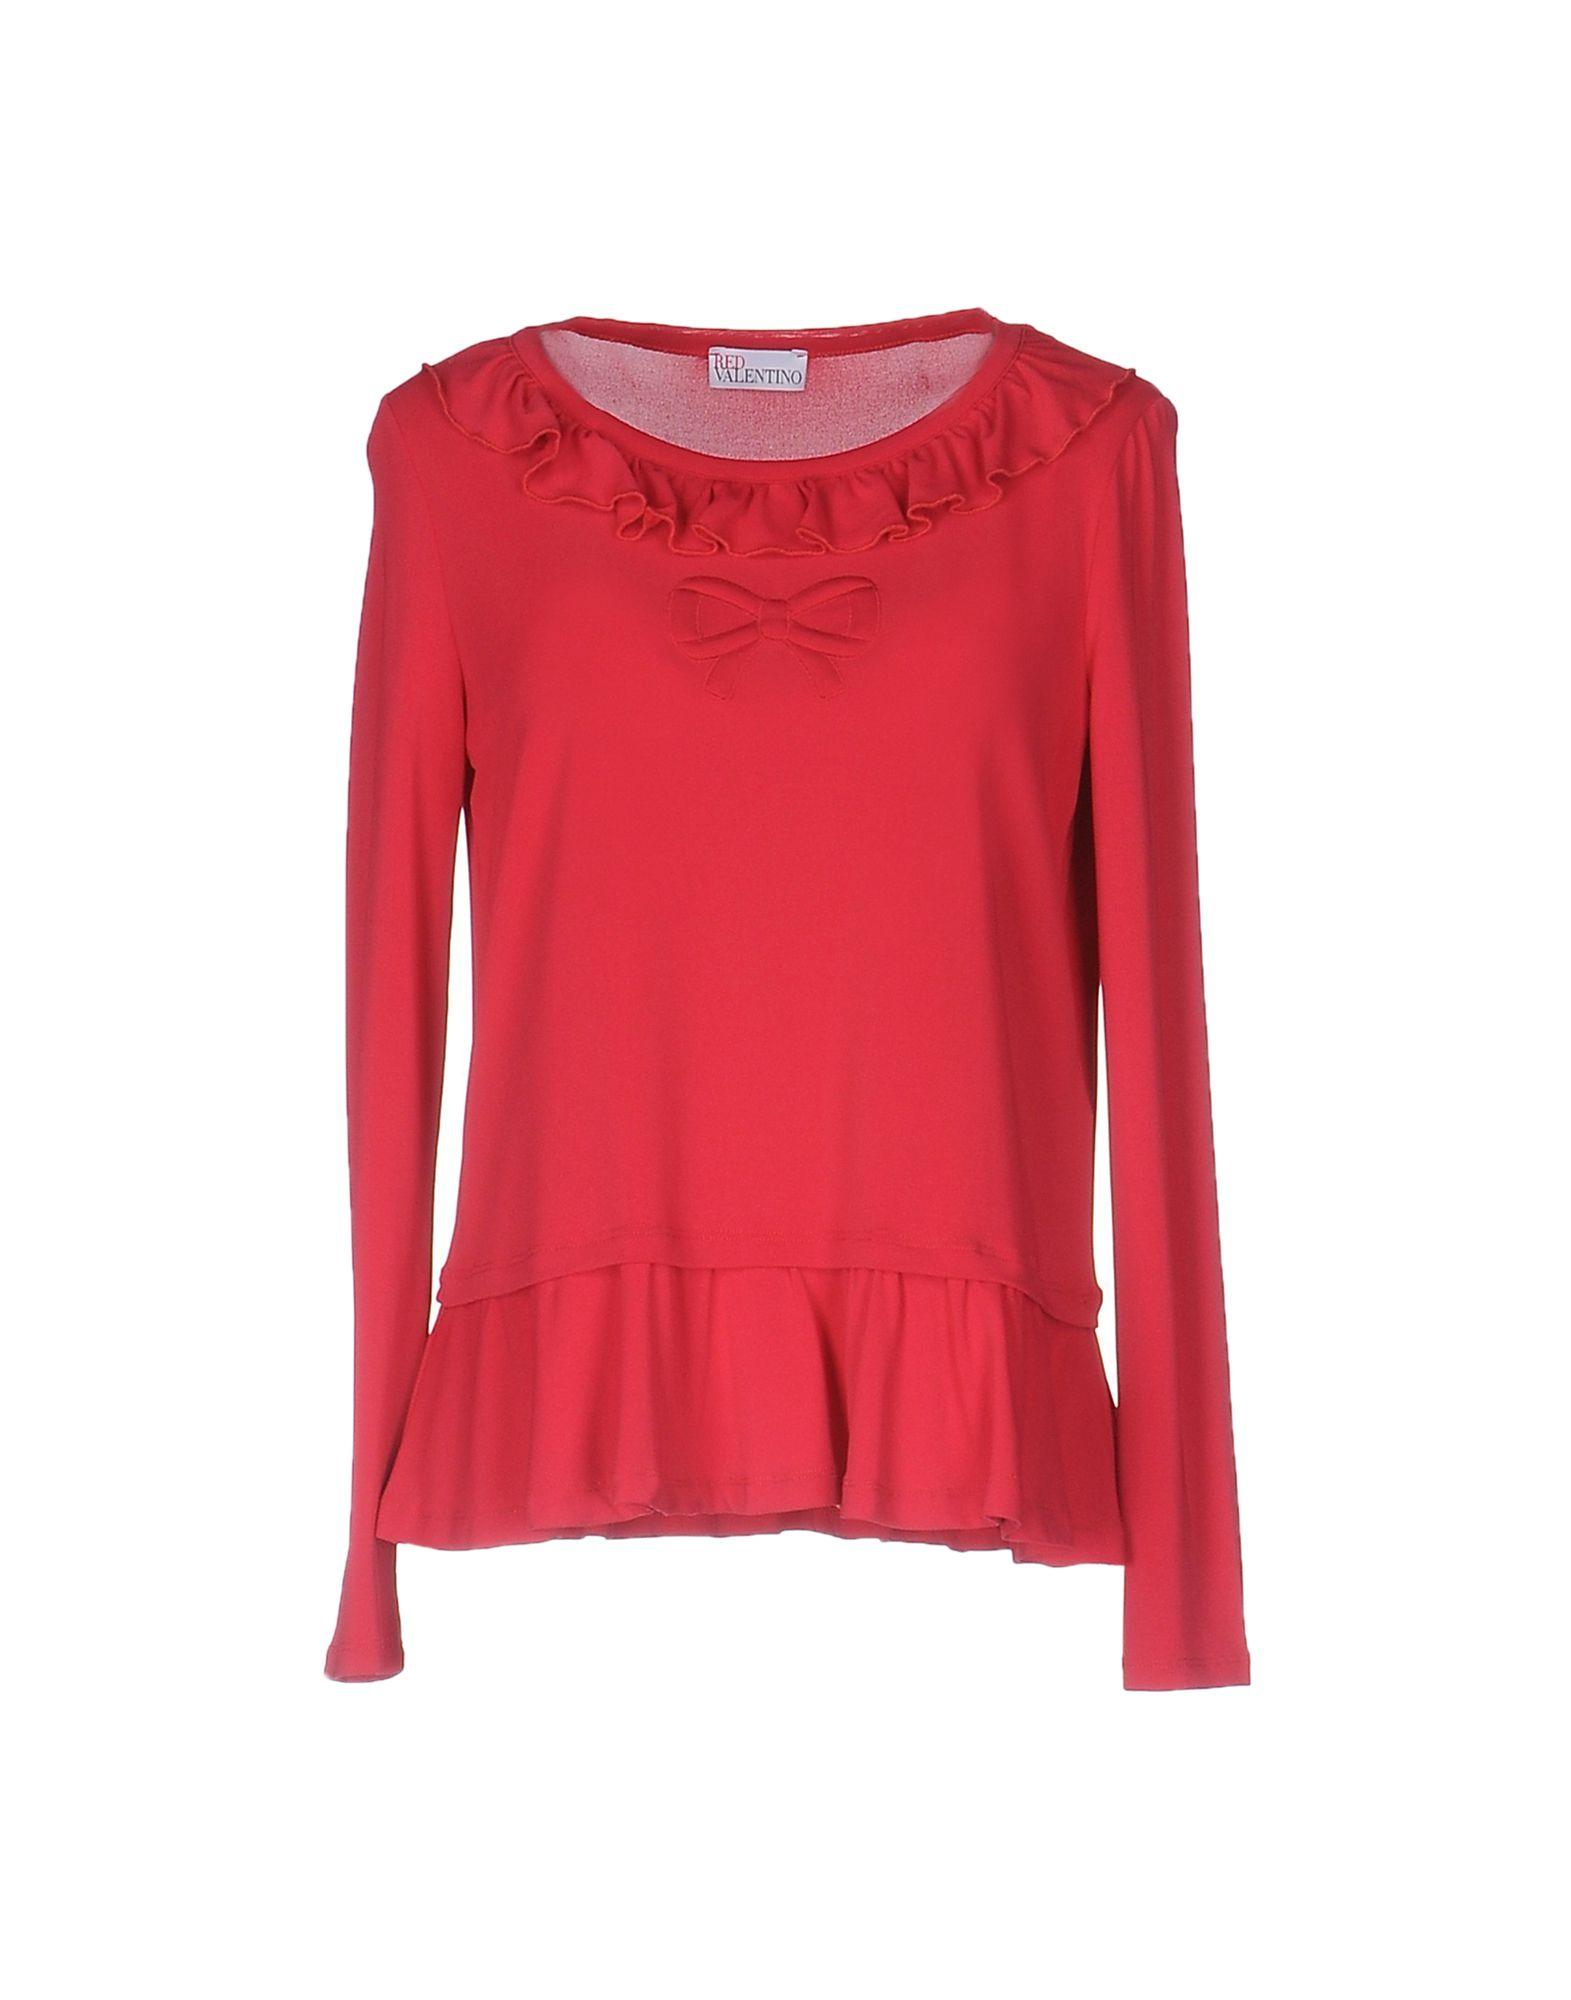 Red valentino t shirt in red lyst for Red valentino t shirt